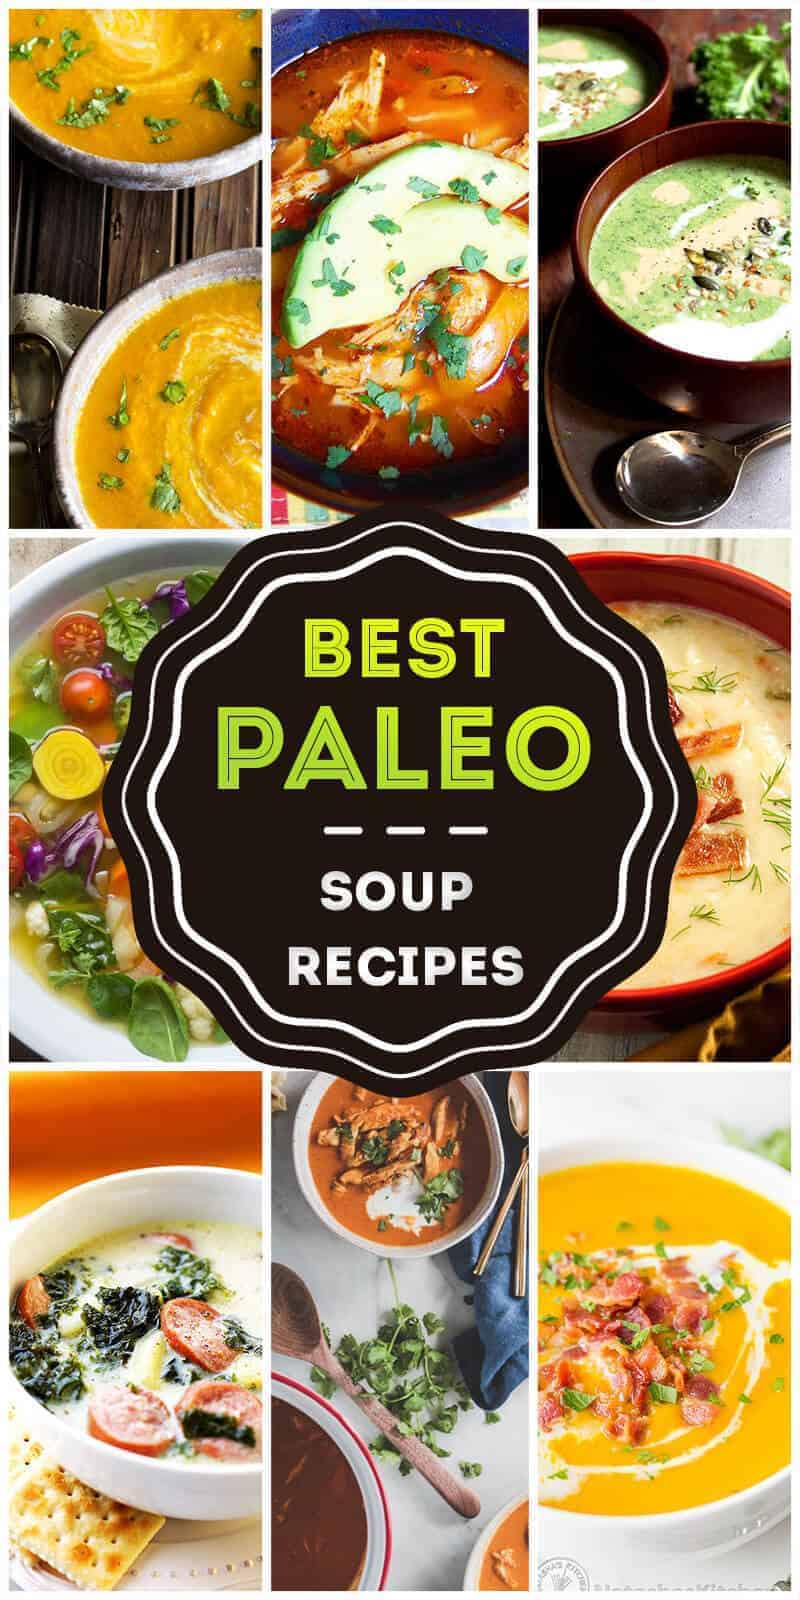 Best Paleo Soup Recipe Ideas